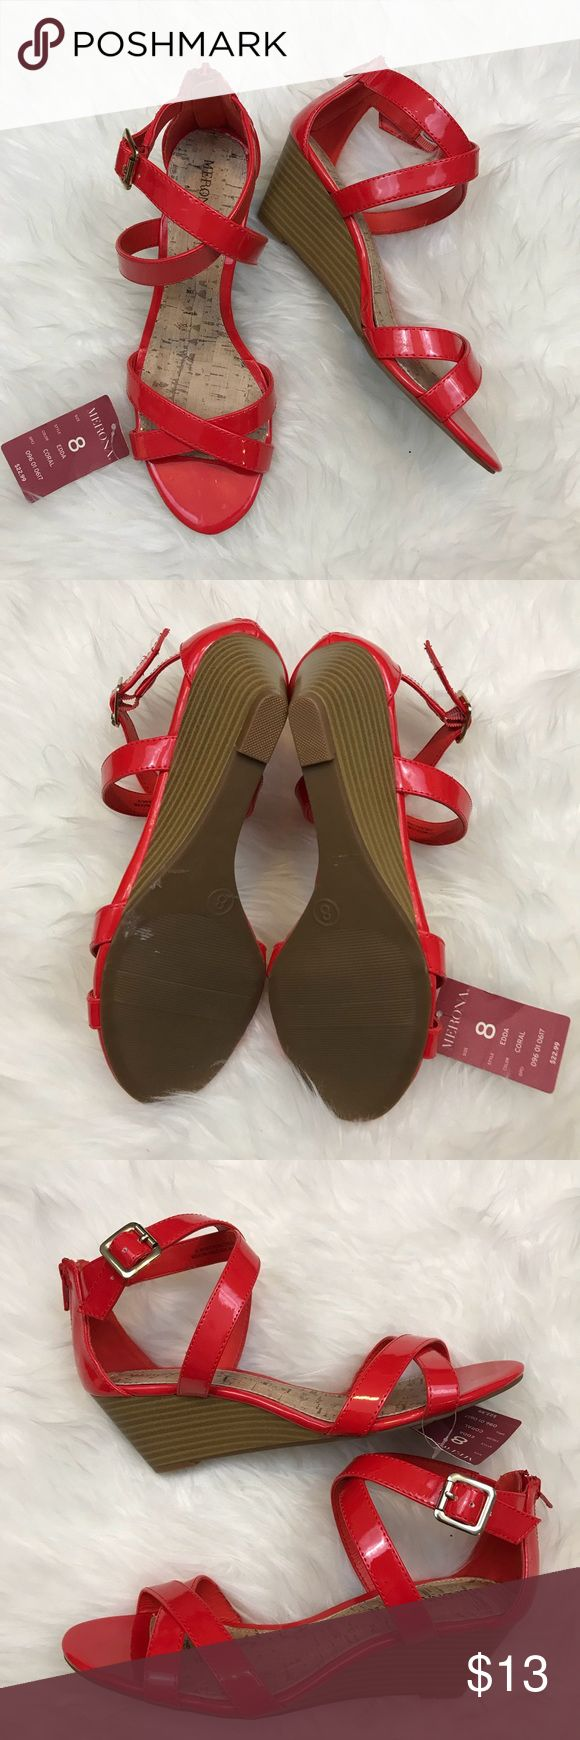 Merona Zip Back Coral Wedge Sandal - Edda Style Brand new and super cute coral color! Non-smoking home. Part of 3/$24 sale - see listing at top of closet. Merona Shoes Sandals